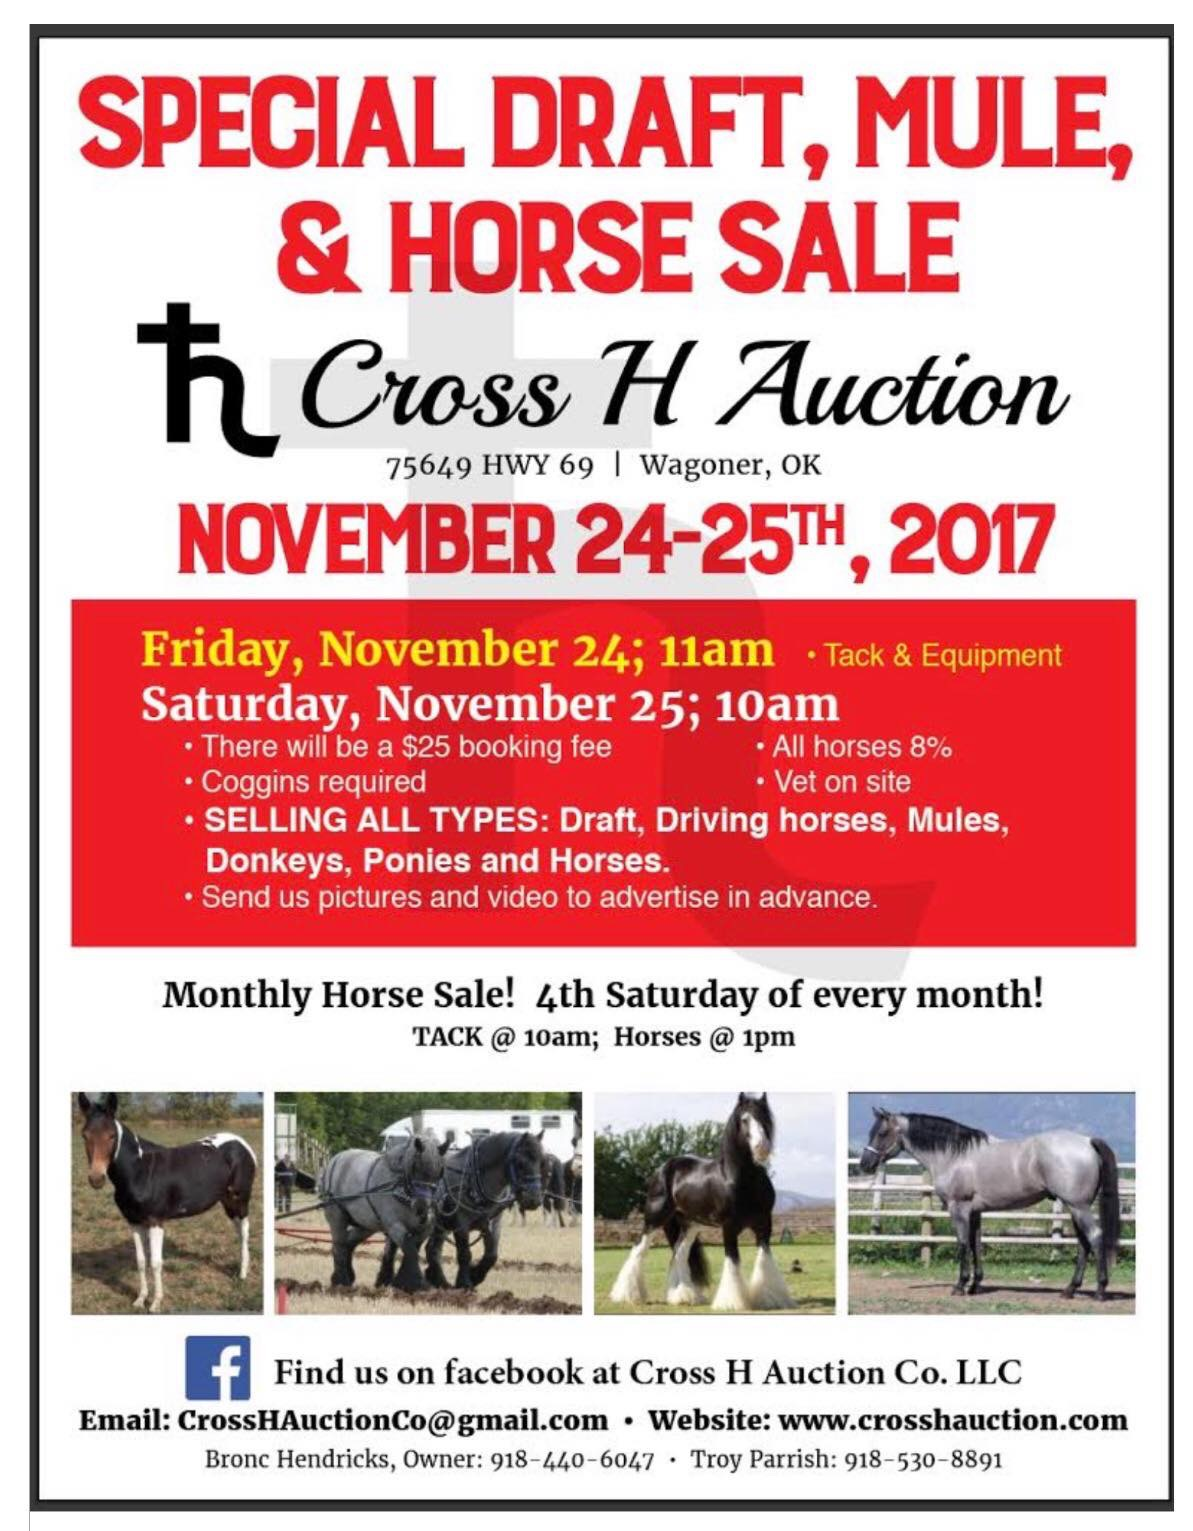 Cross H Auction